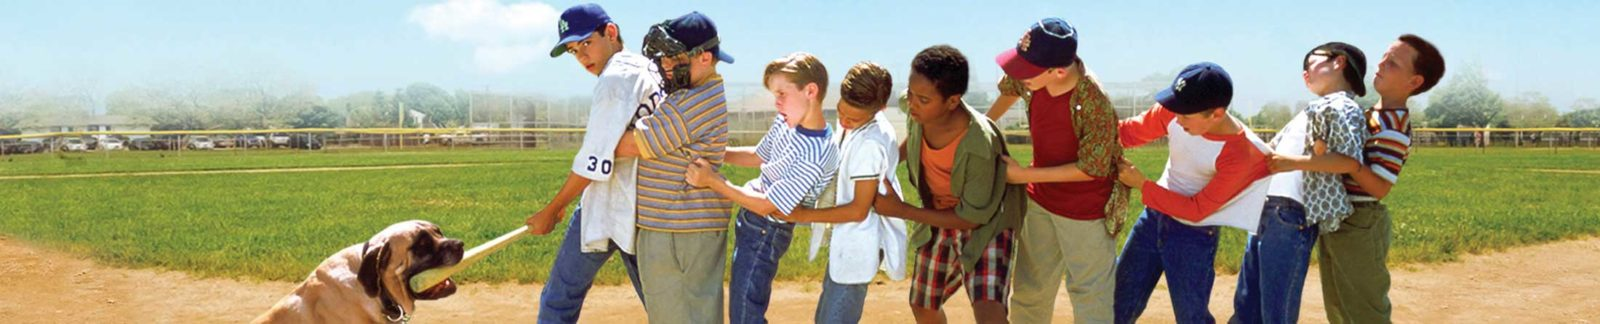 The Sandlot - header